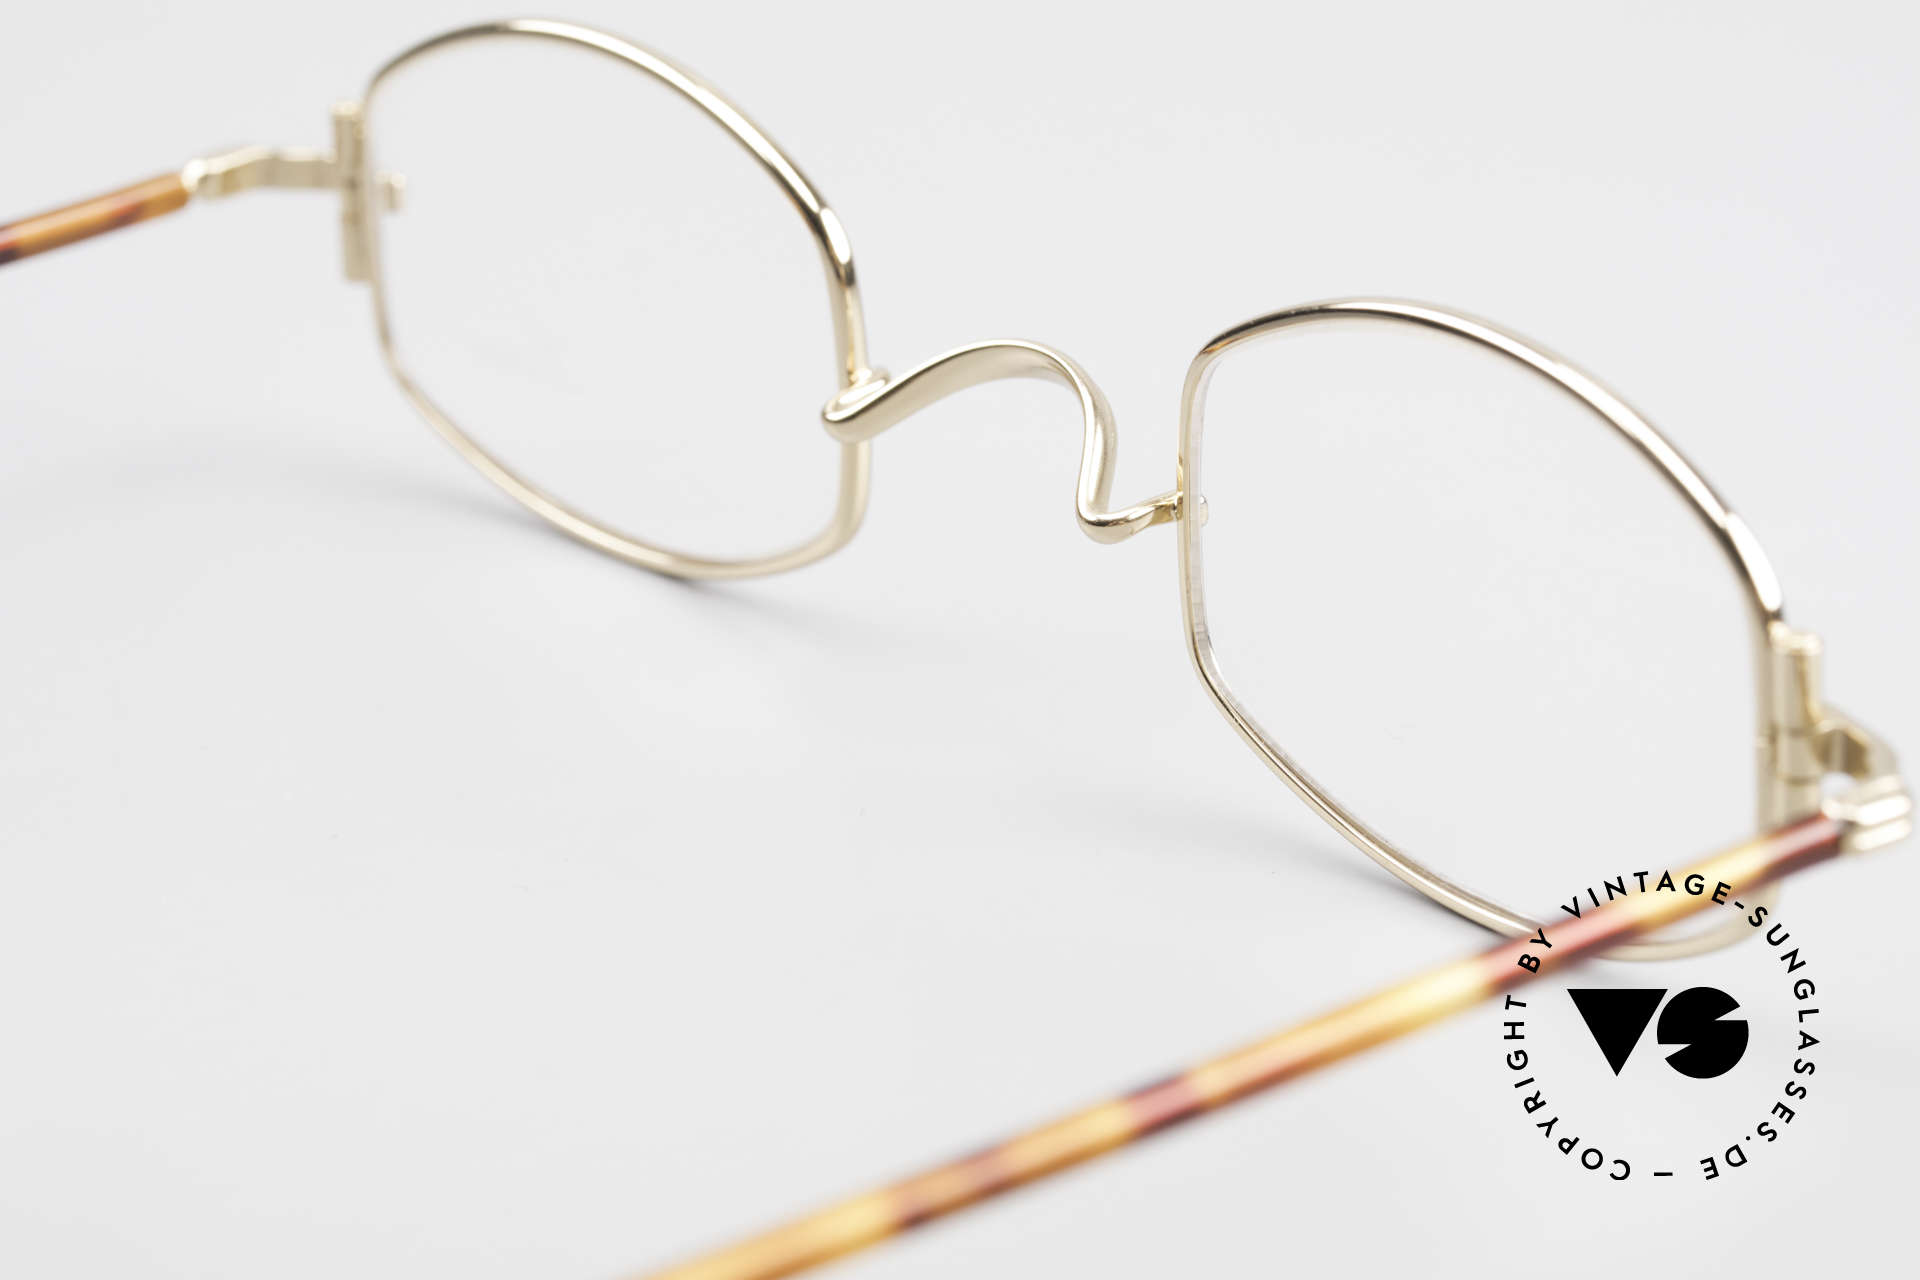 """Lunor XA 03 Lunor Eyeglasses True Vintage, the frame front / frame design looks like a """"LYING TON"""", Made for Men and Women"""